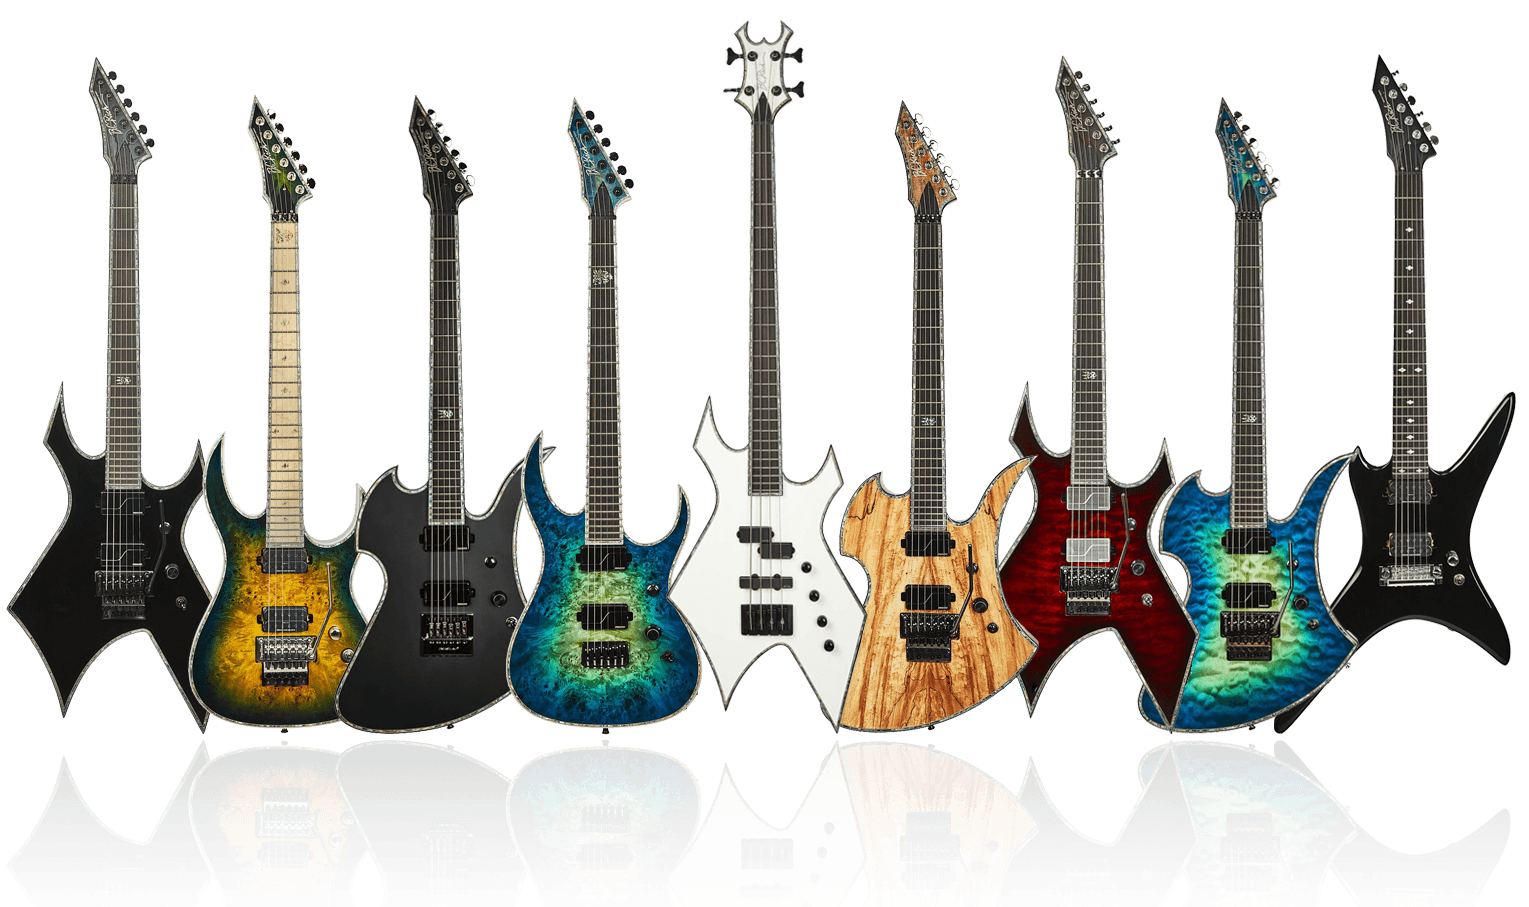 bcr_home_guitars_final